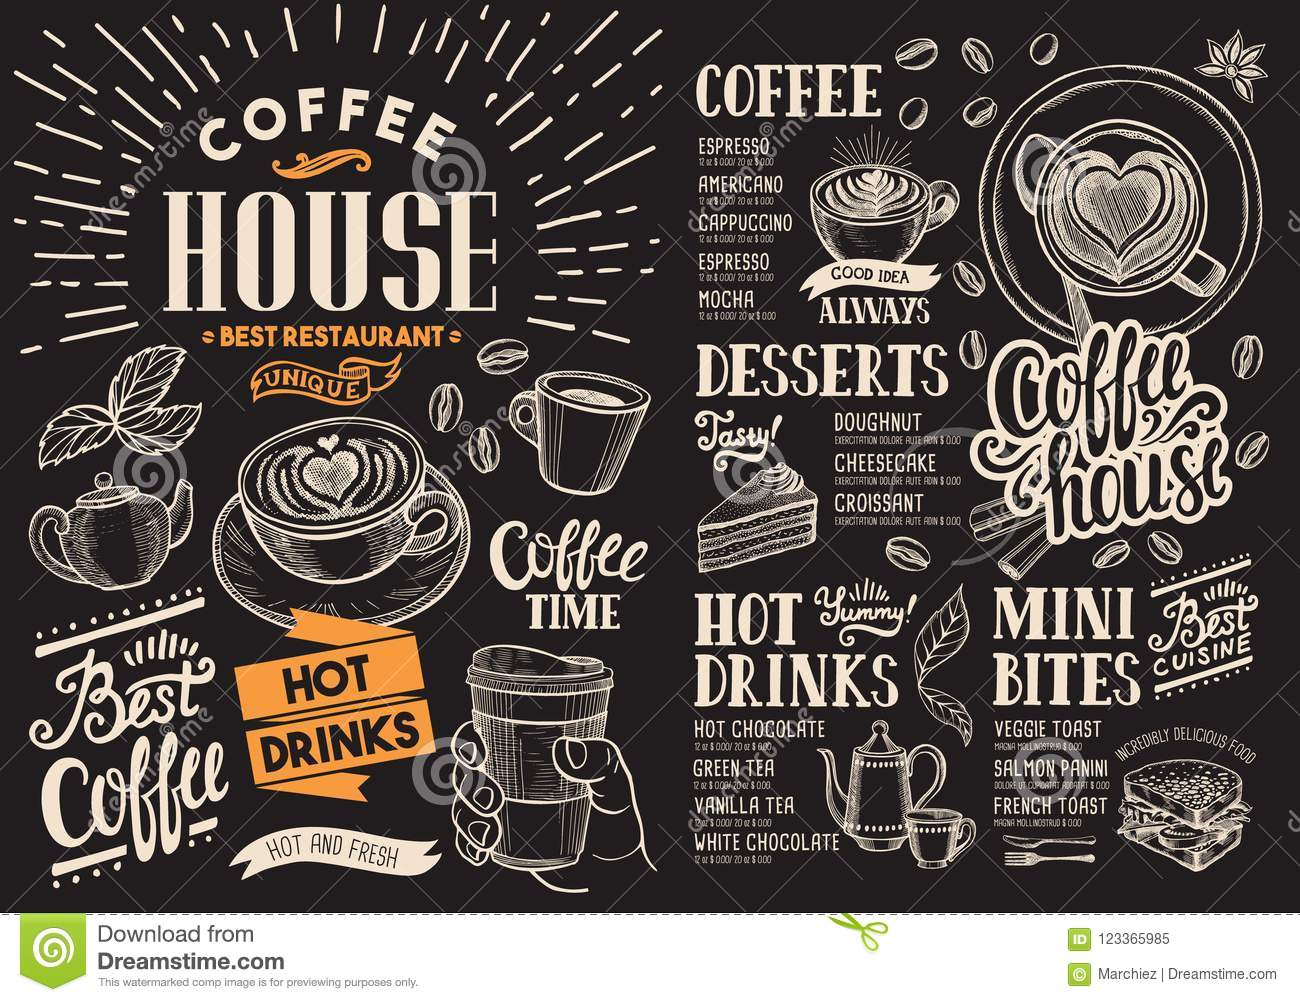 Coffee Restaurant Menu On Chalkboard Vector Drink Flyer For Bar And Cafe Design Template With Vintage Hand Drawn Food Illustrations